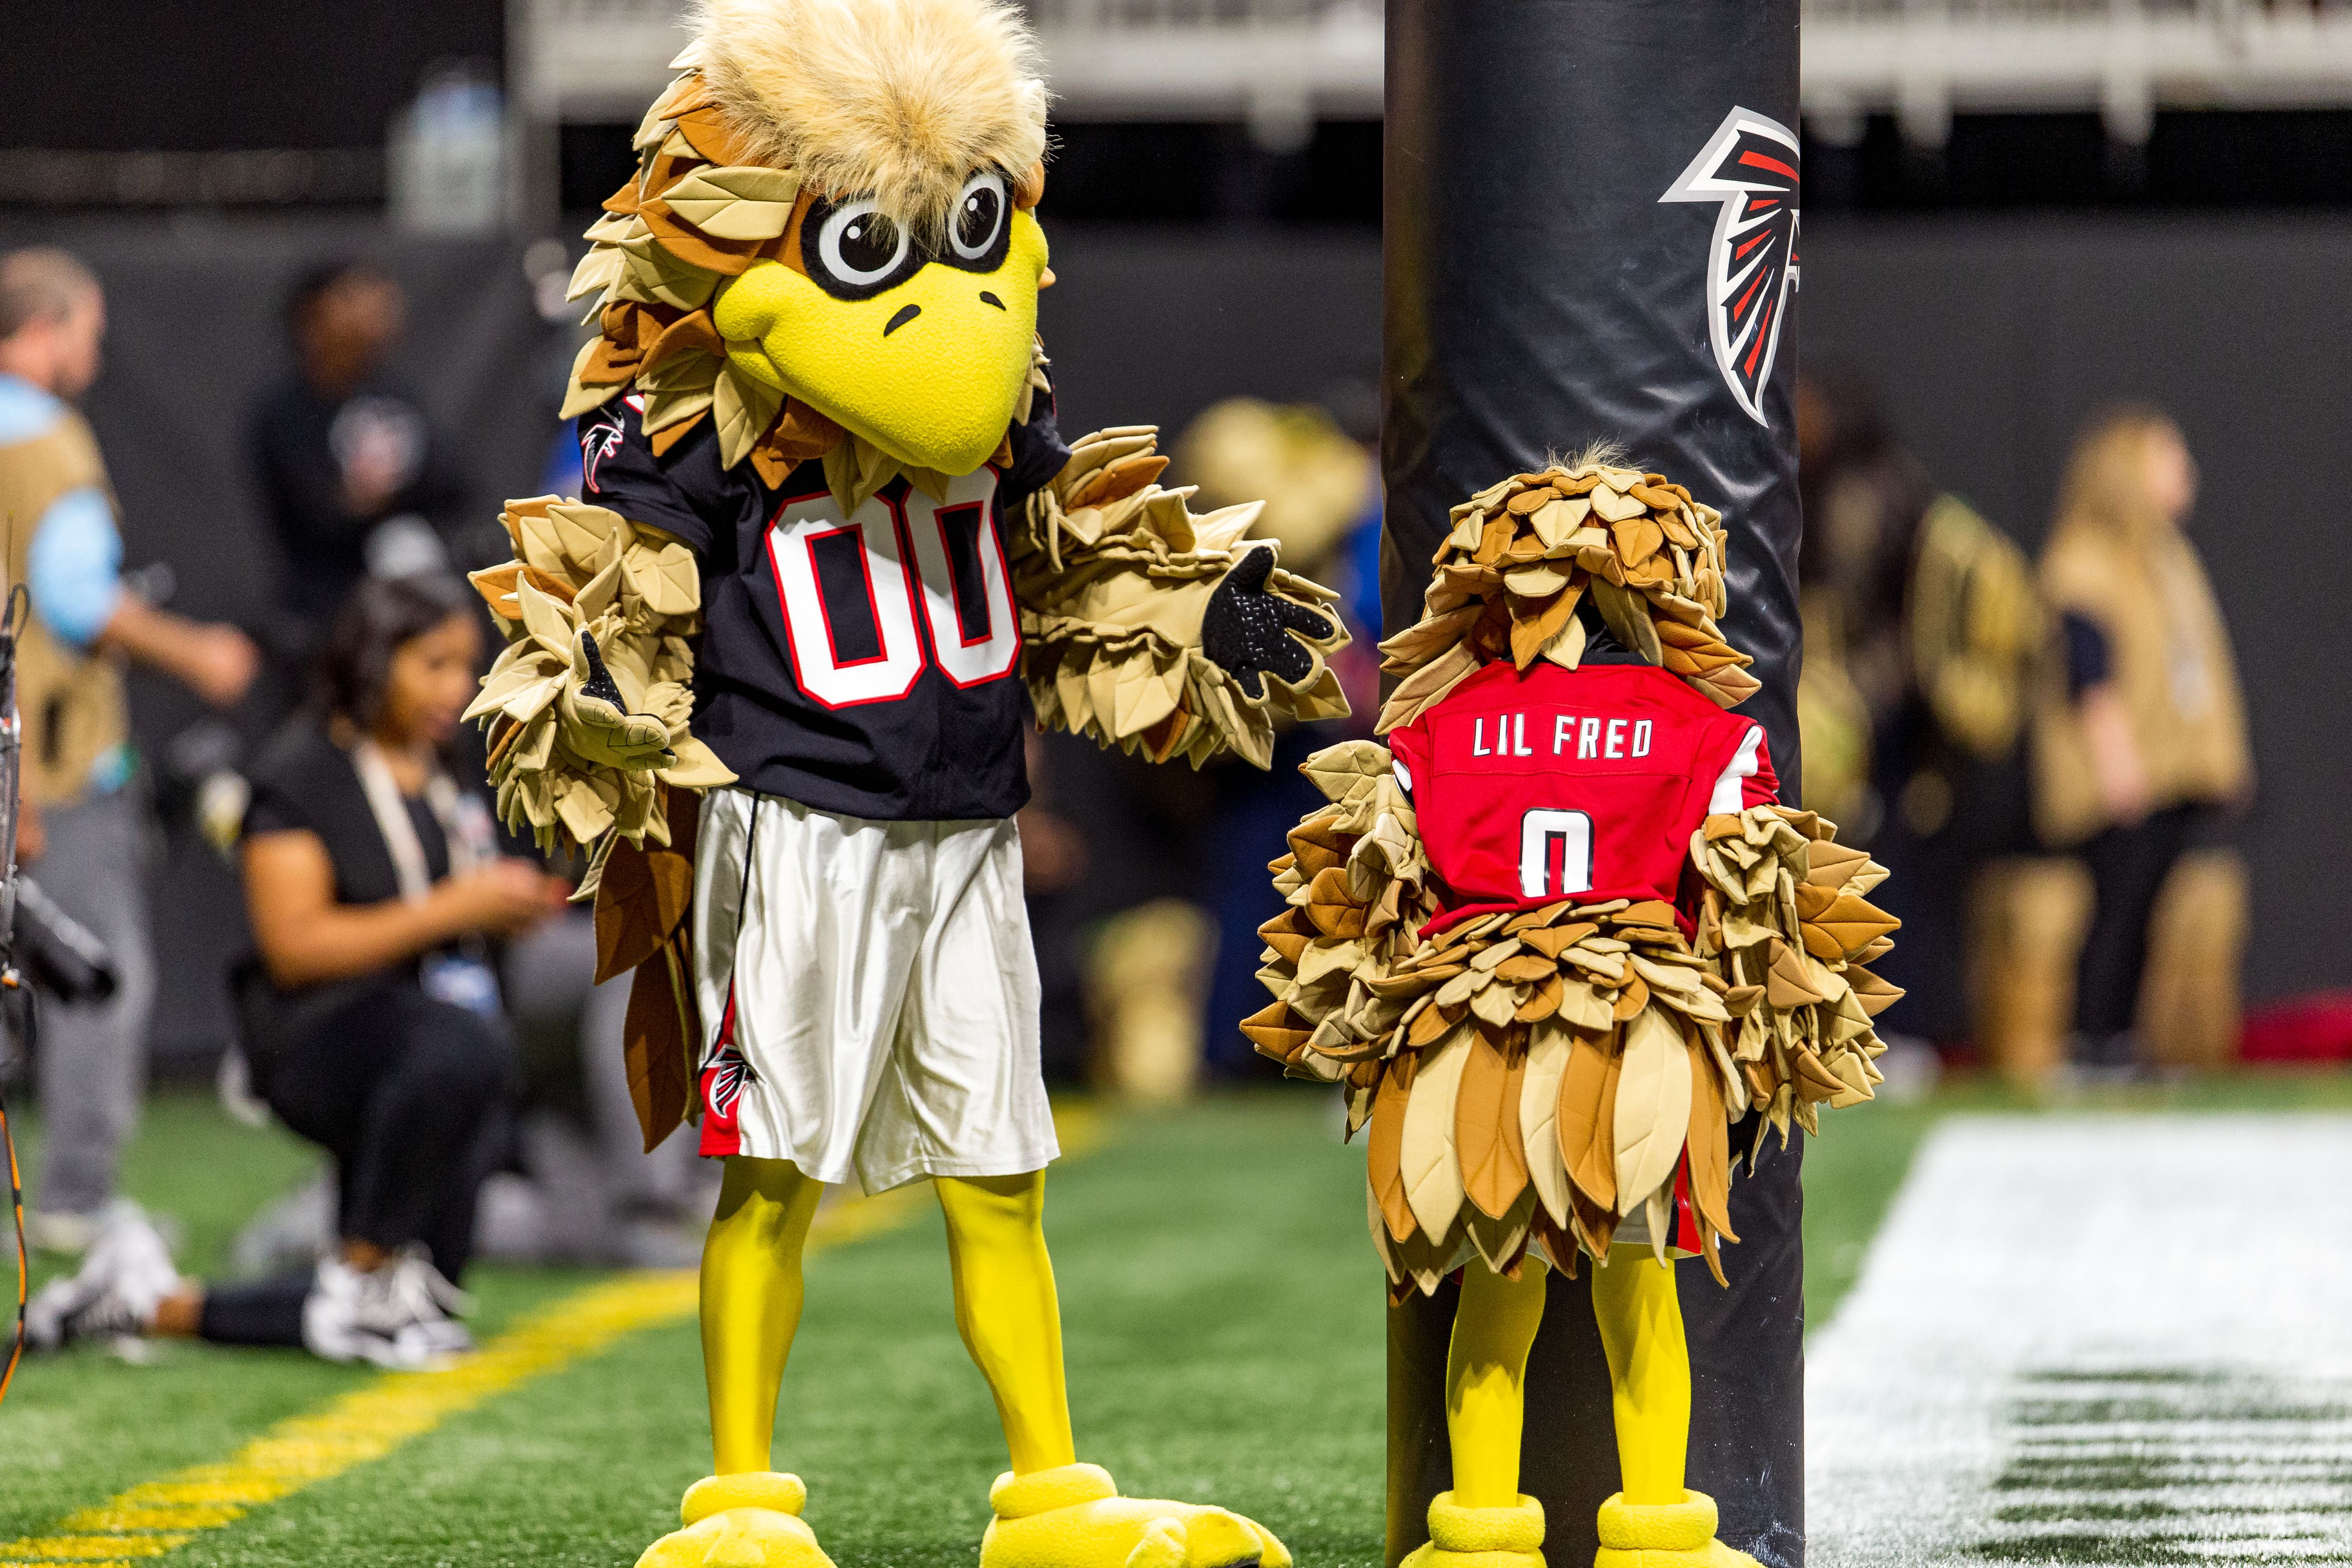 Introducing LIL' FRED – Freddie Falcon's pint-sized protégé!